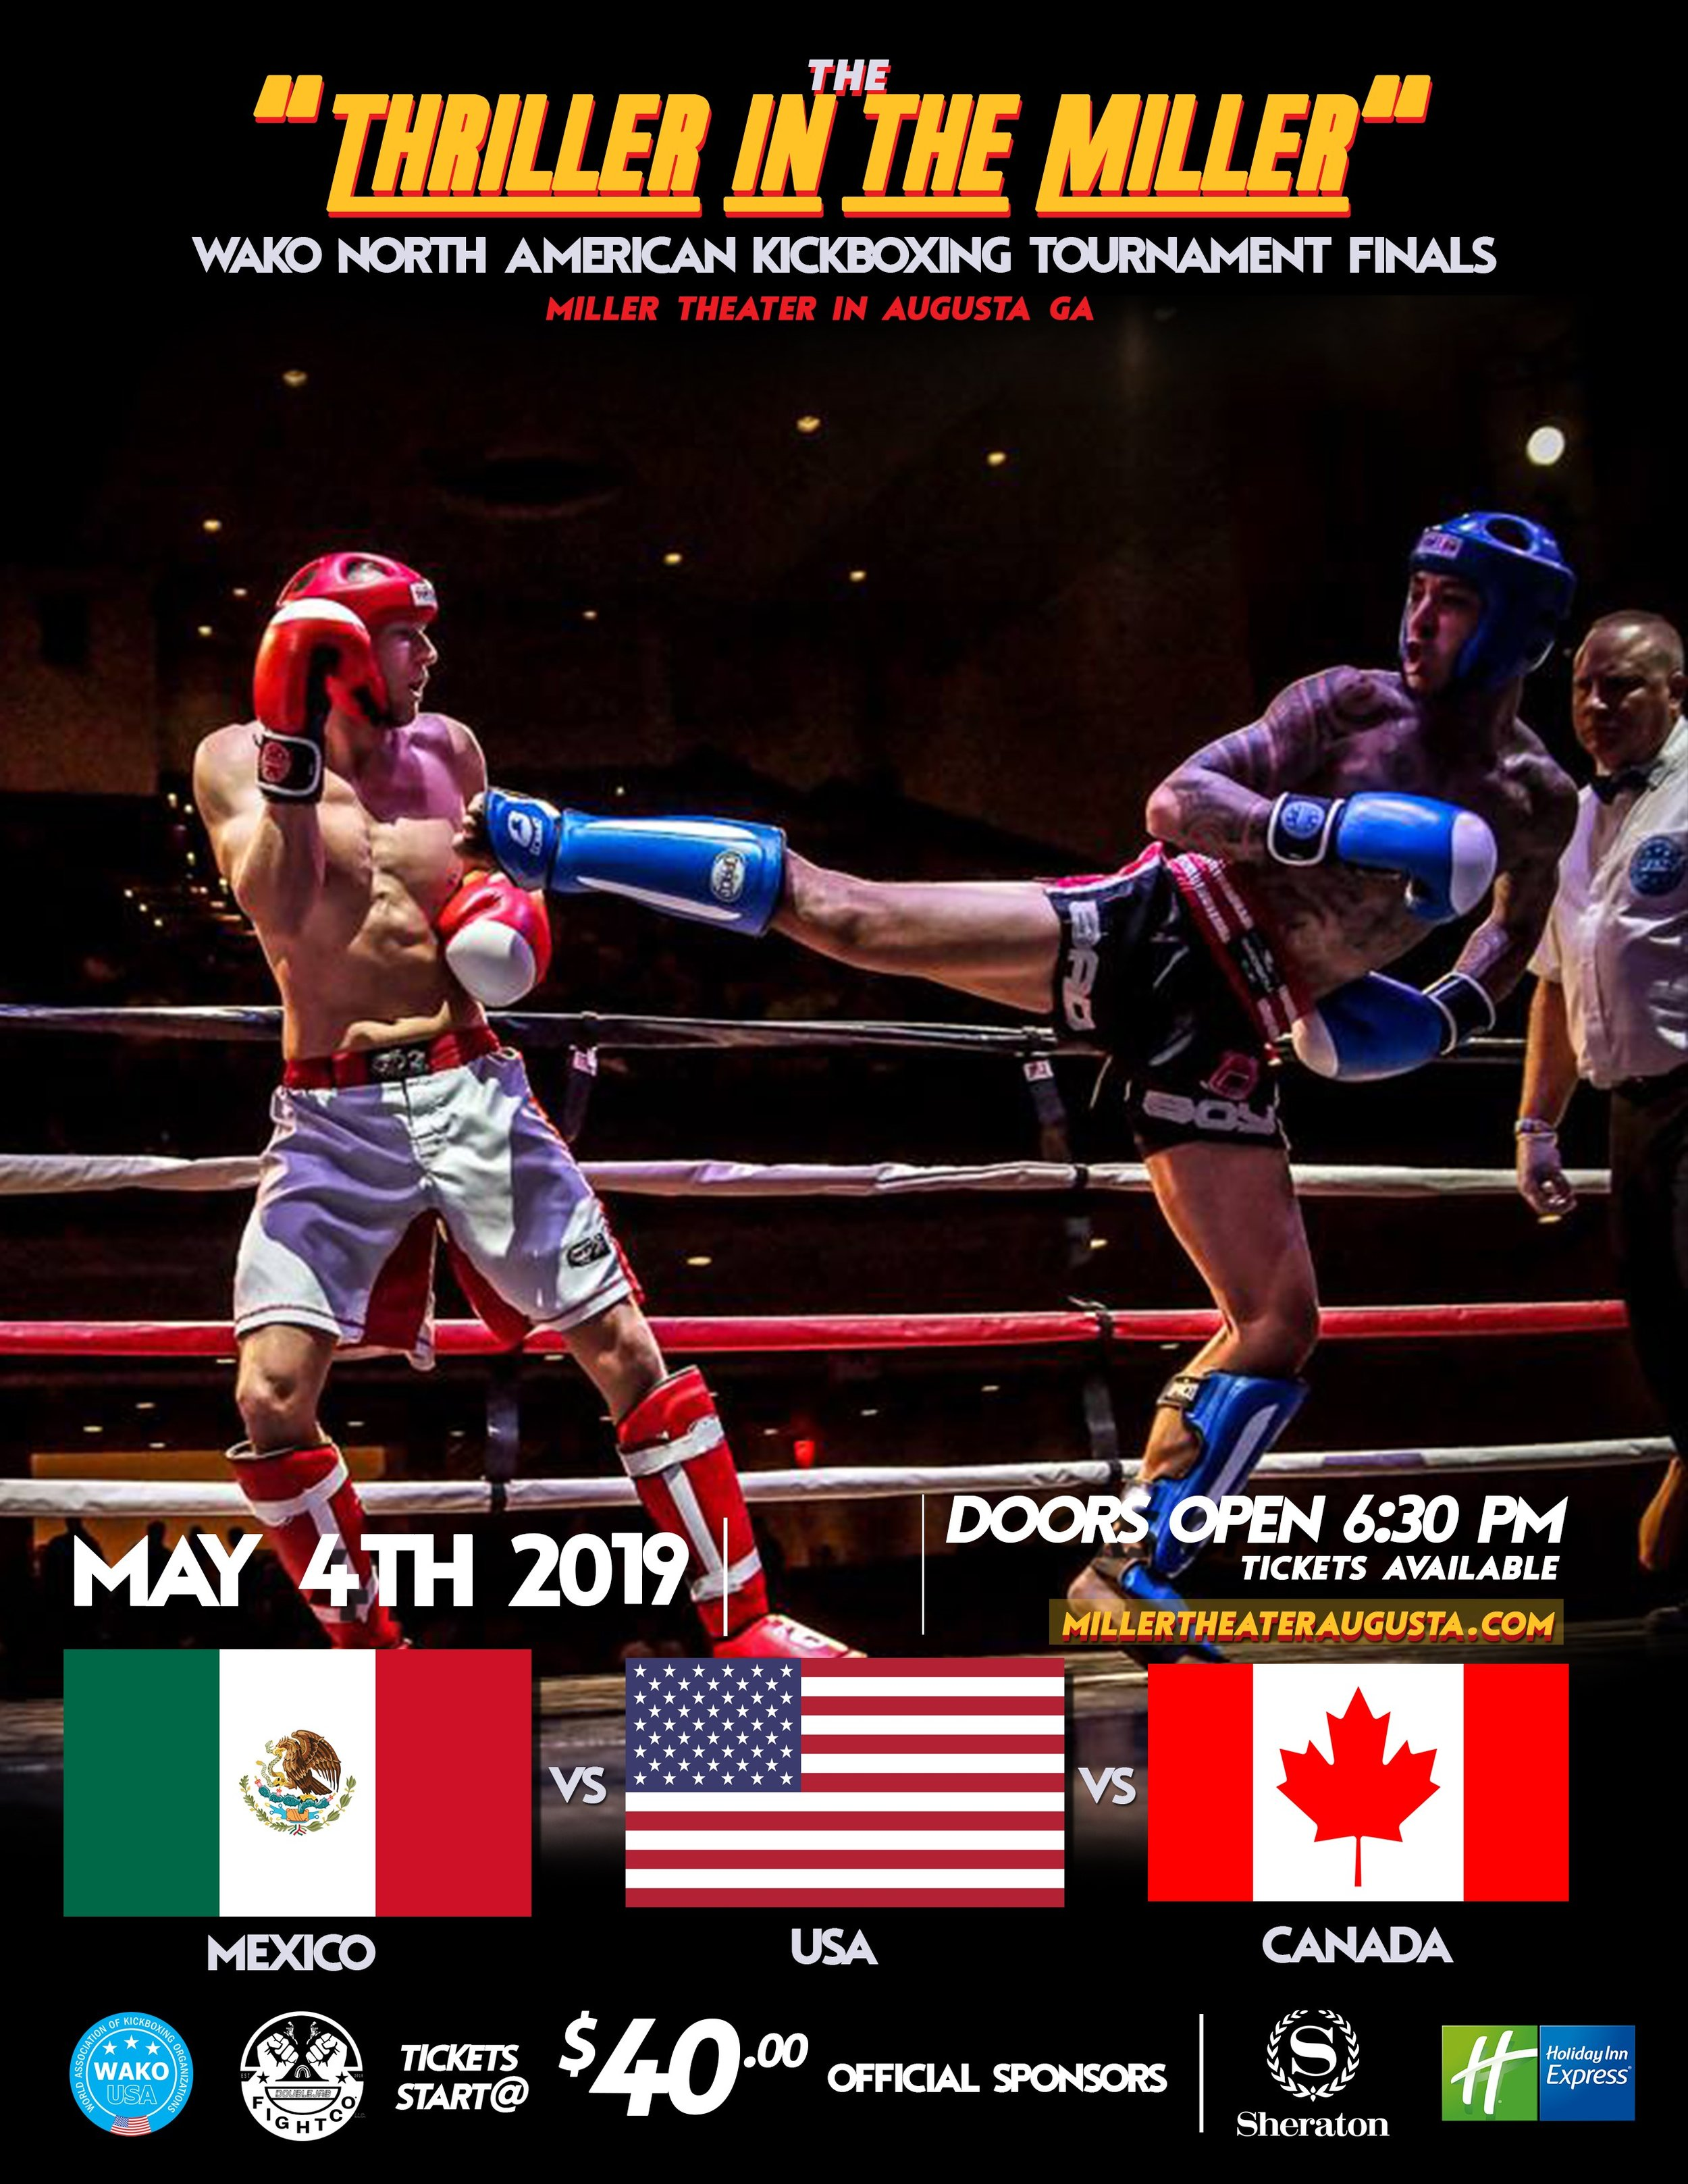 """Thriller InThe Miller"" - The WAKO North American Kickboxing Tournament will be held here in Augusta, GA on May 4th at the historic Miller Theater! The national teams of Canada, Mexico, and the United States will be competing for kickboxing supremacy! get tickets now at www.MillerTheaterAugusta.com"